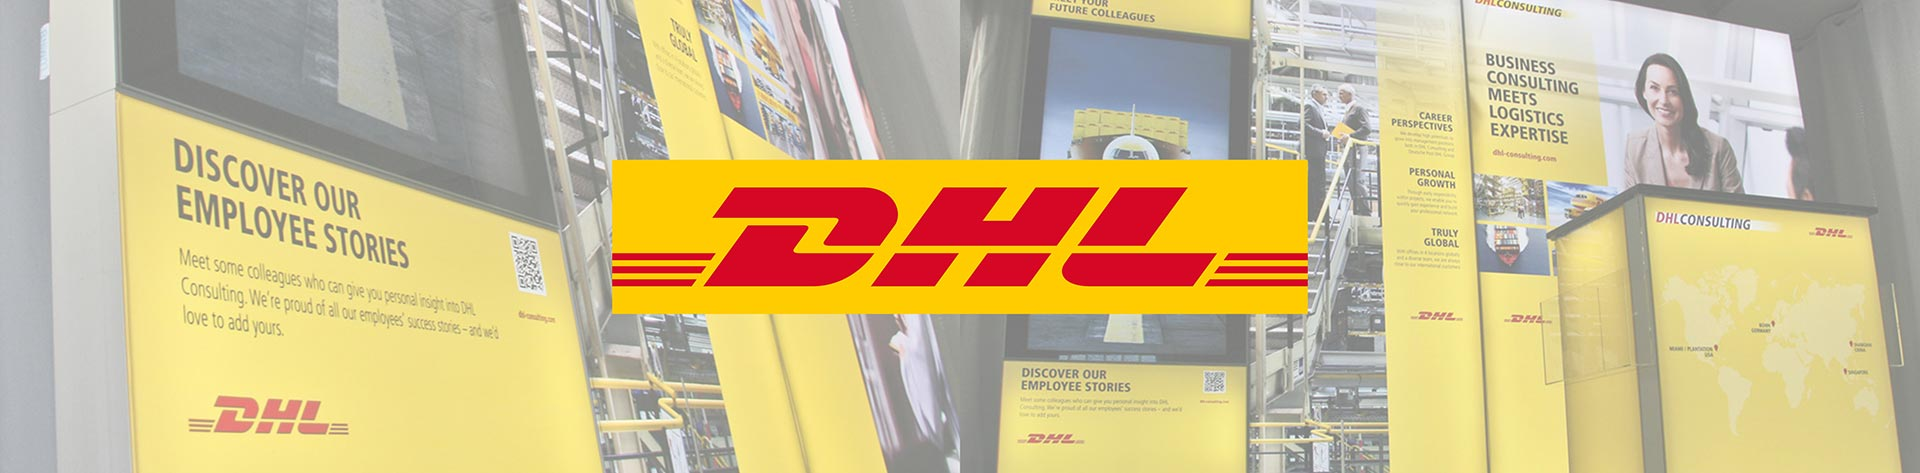 Case Study DHL Header